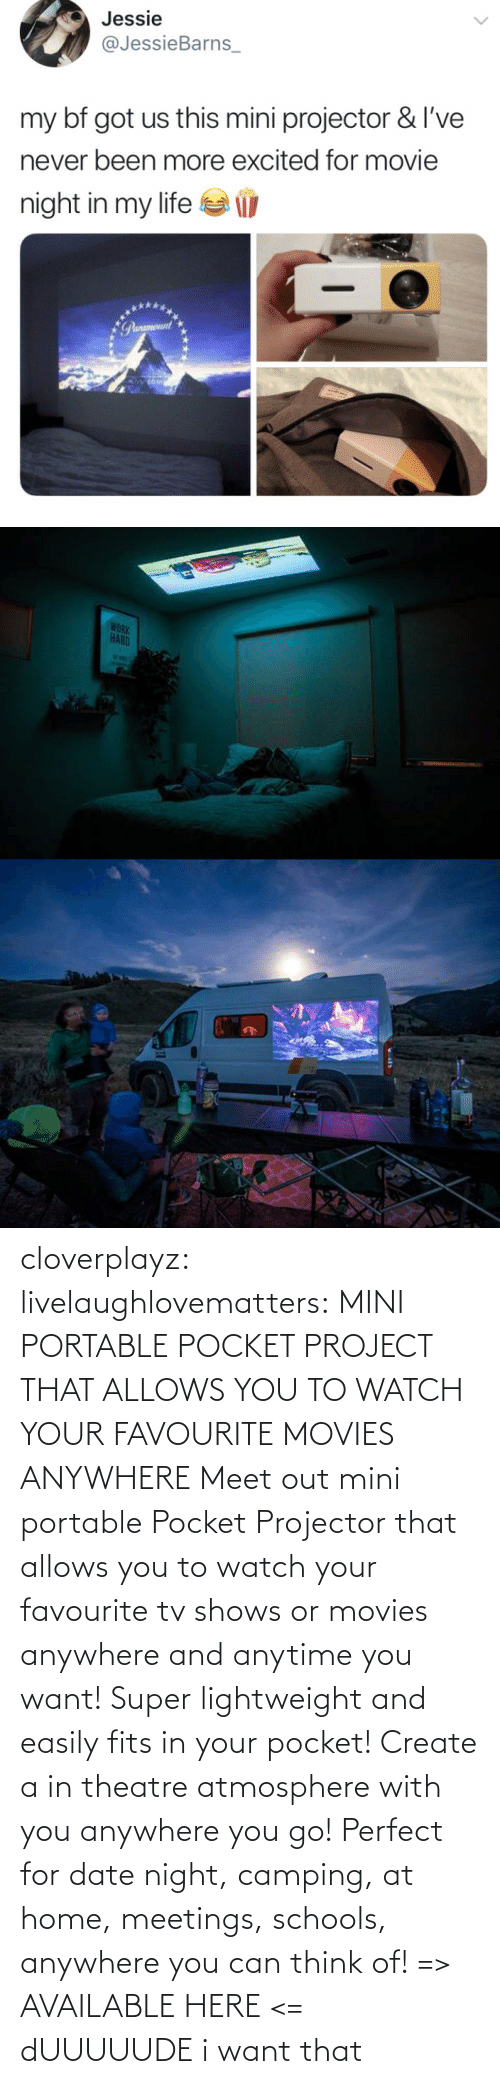 Easily: cloverplayz: livelaughlovematters:  MINI PORTABLE POCKET PROJECT THAT ALLOWS YOU TO WATCH YOUR FAVOURITE MOVIES ANYWHERE Meet out mini portable Pocket Projector that allows you to watch your favourite tv shows or movies anywhere and anytime you want! Super lightweight and easily fits in your pocket! Create a in theatre atmosphere with you anywhere you go! Perfect for date night, camping, at home, meetings, schools, anywhere you can think of! => AVAILABLE HERE <=  dUUUUUDE i want that